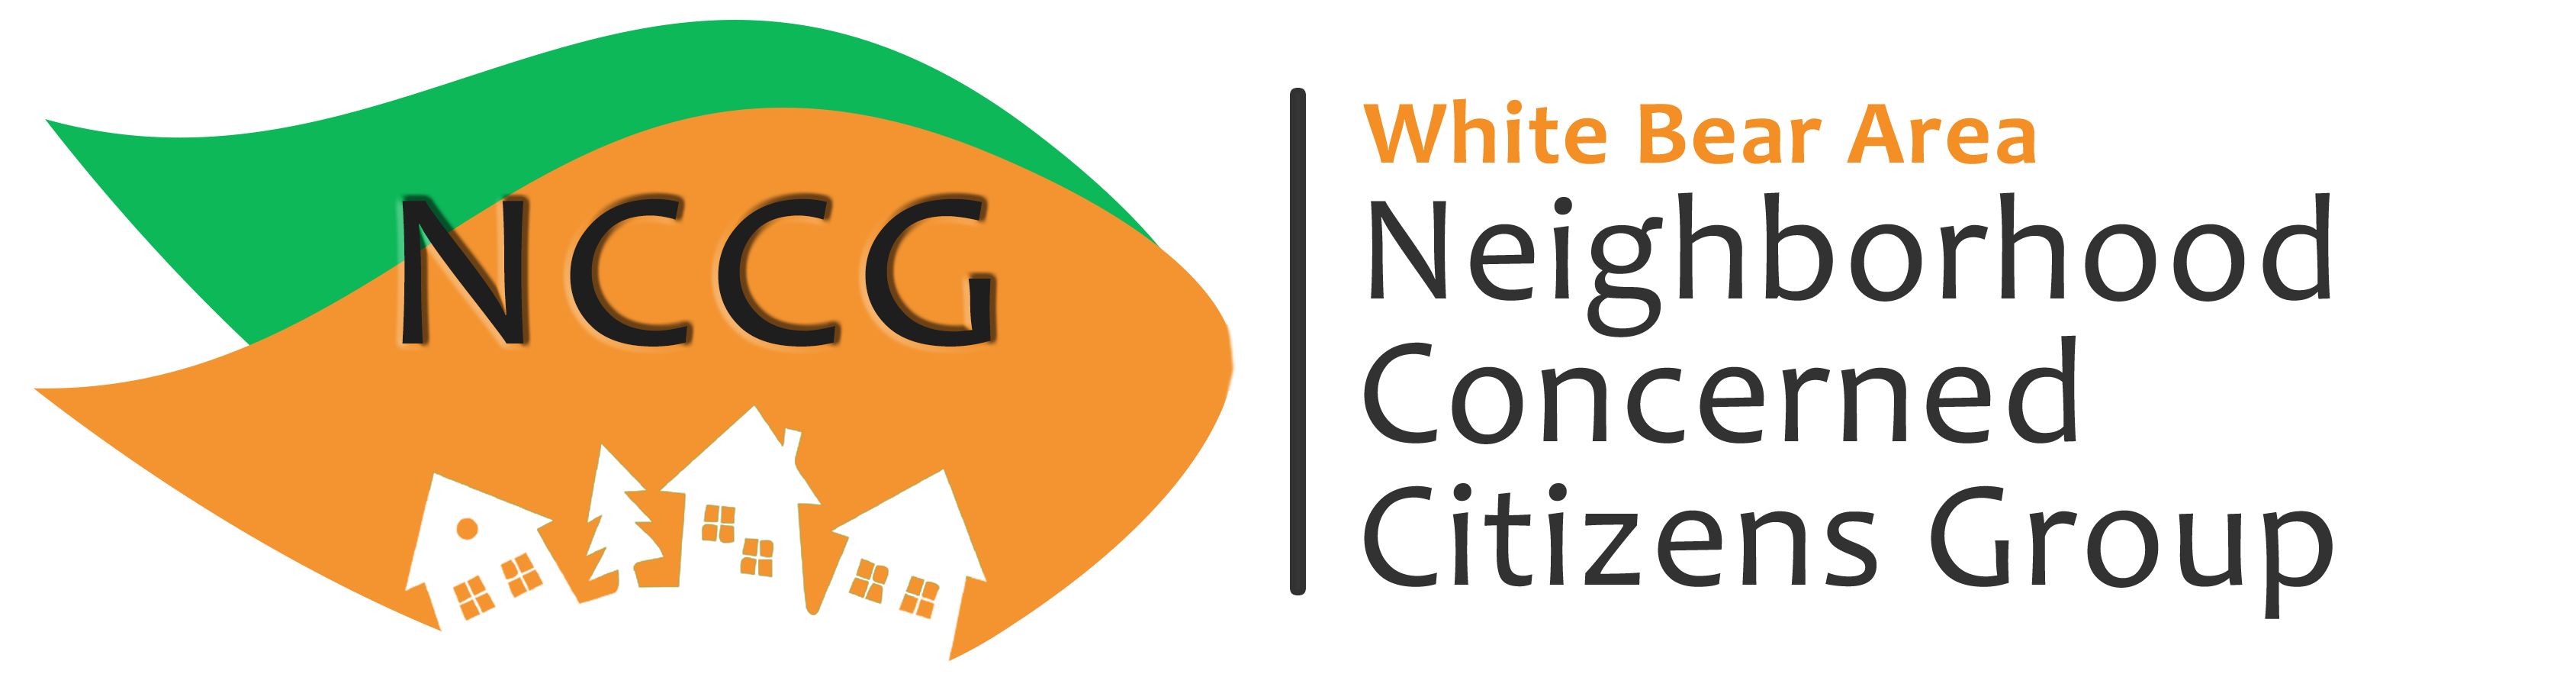 white bear area neighborhood concerned citizens group